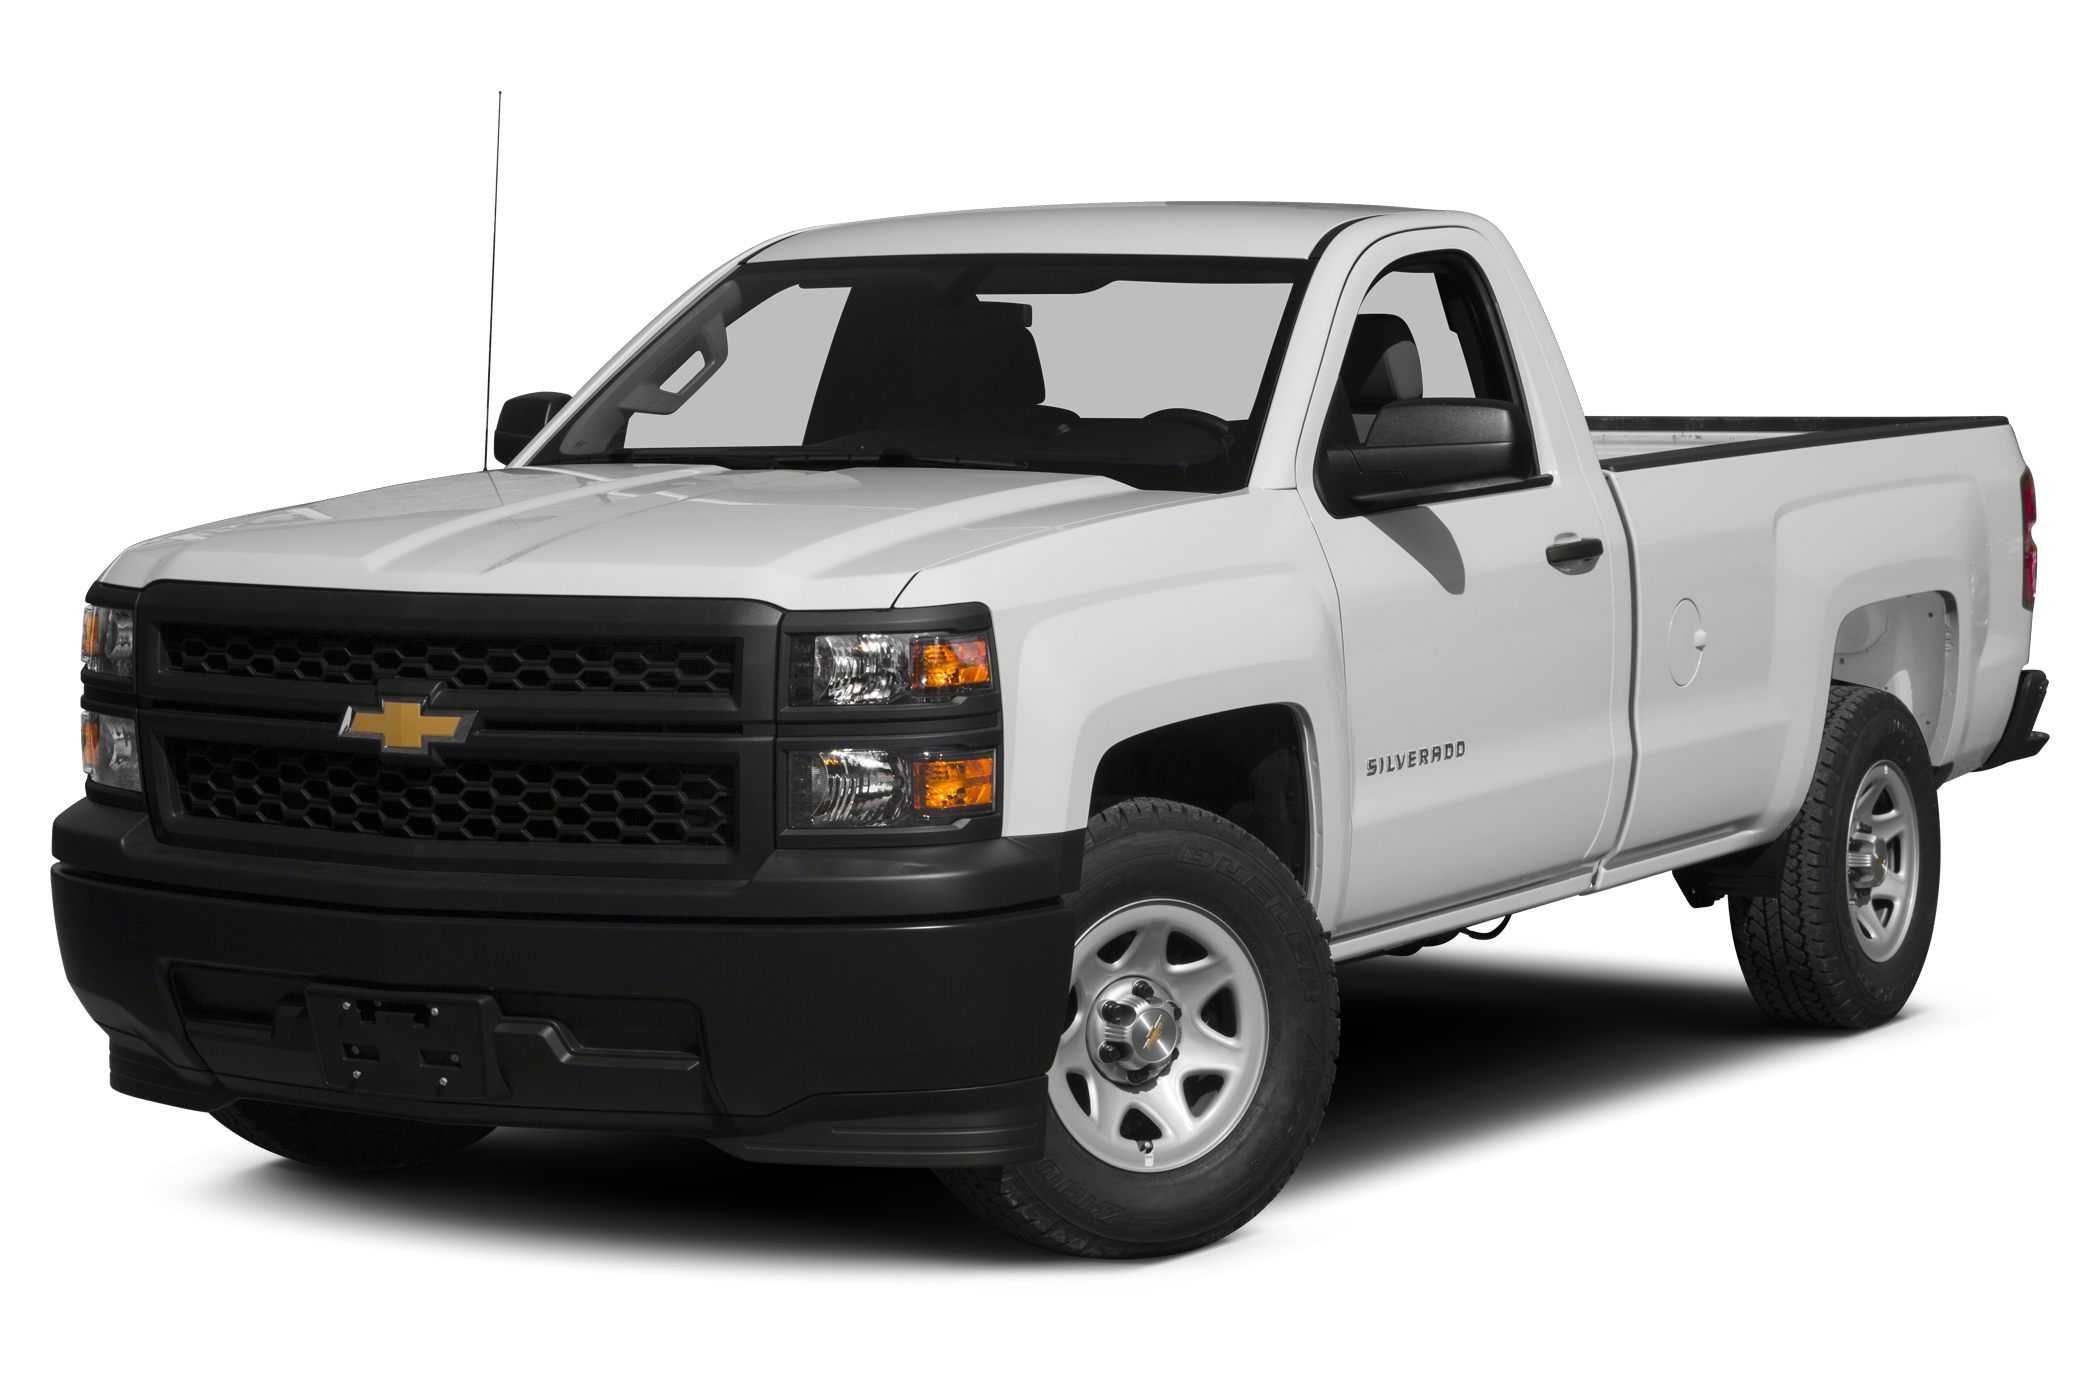 2015 Chevrolet Silverado 1500 1LT Extended Cab Pickup for sale in Rochester for $43,575 with 2 miles.